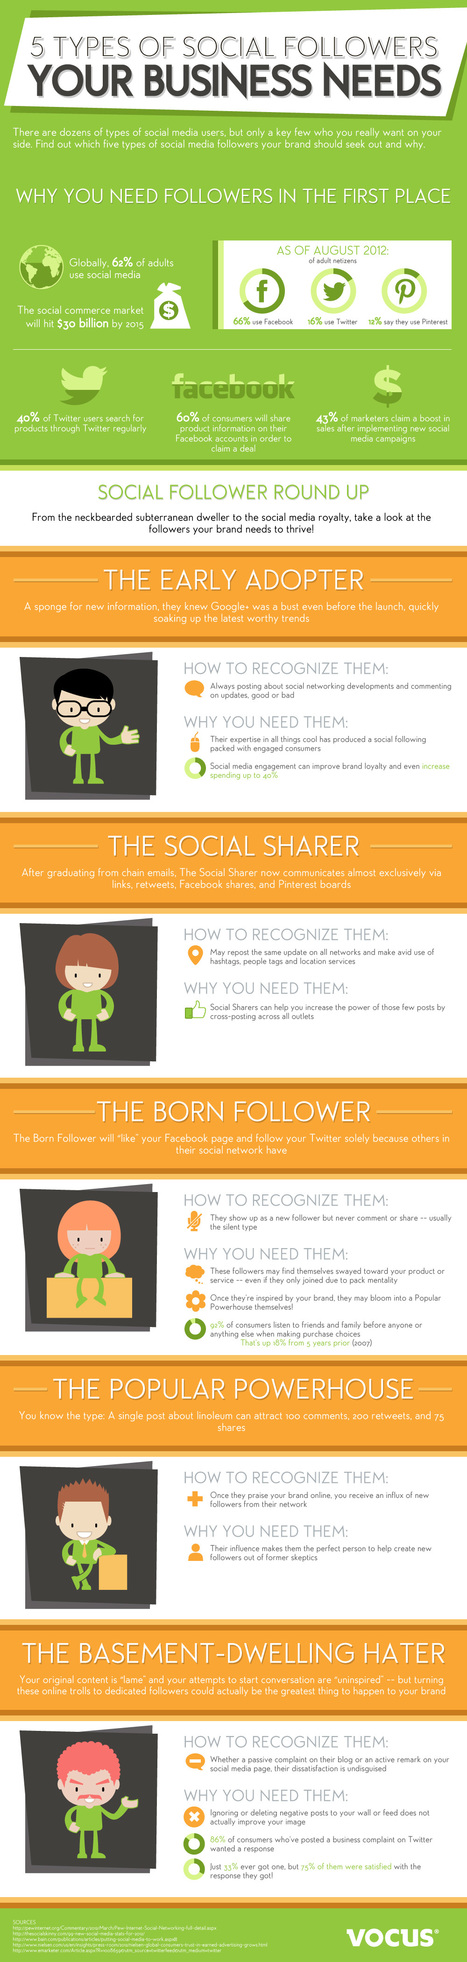 The 5 Types of Social Followers that Every Business Needs [INFOGRAPHIC] | Wallet Digital - Social Media, Business & Technology | Scoop.it